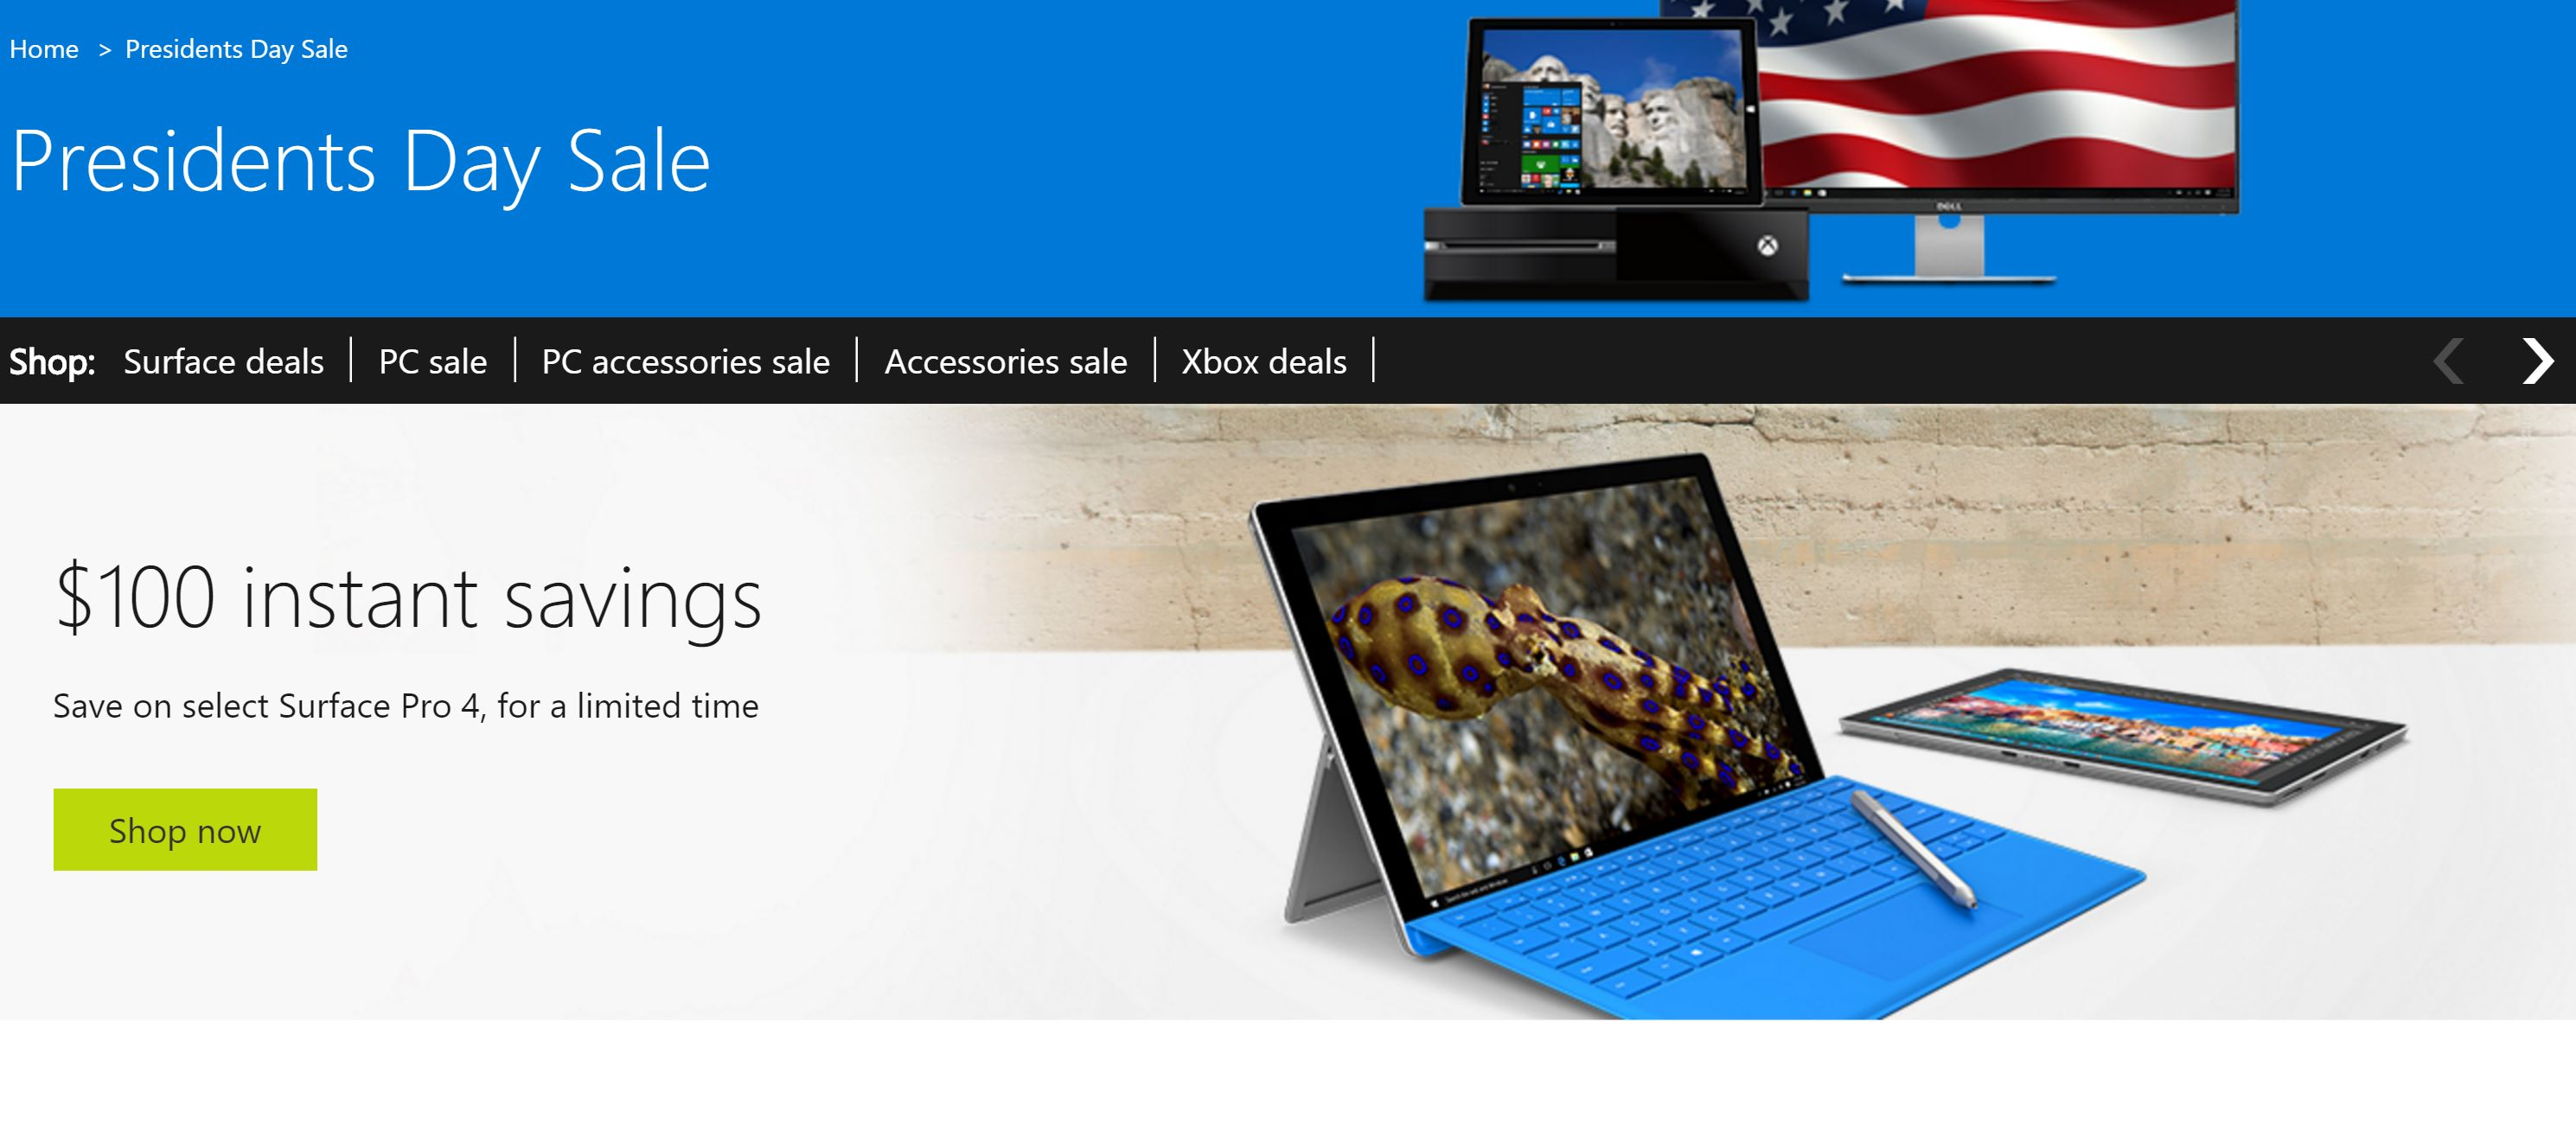 President's Day Sale Stuffed with Surface Pro 4 Price Cut